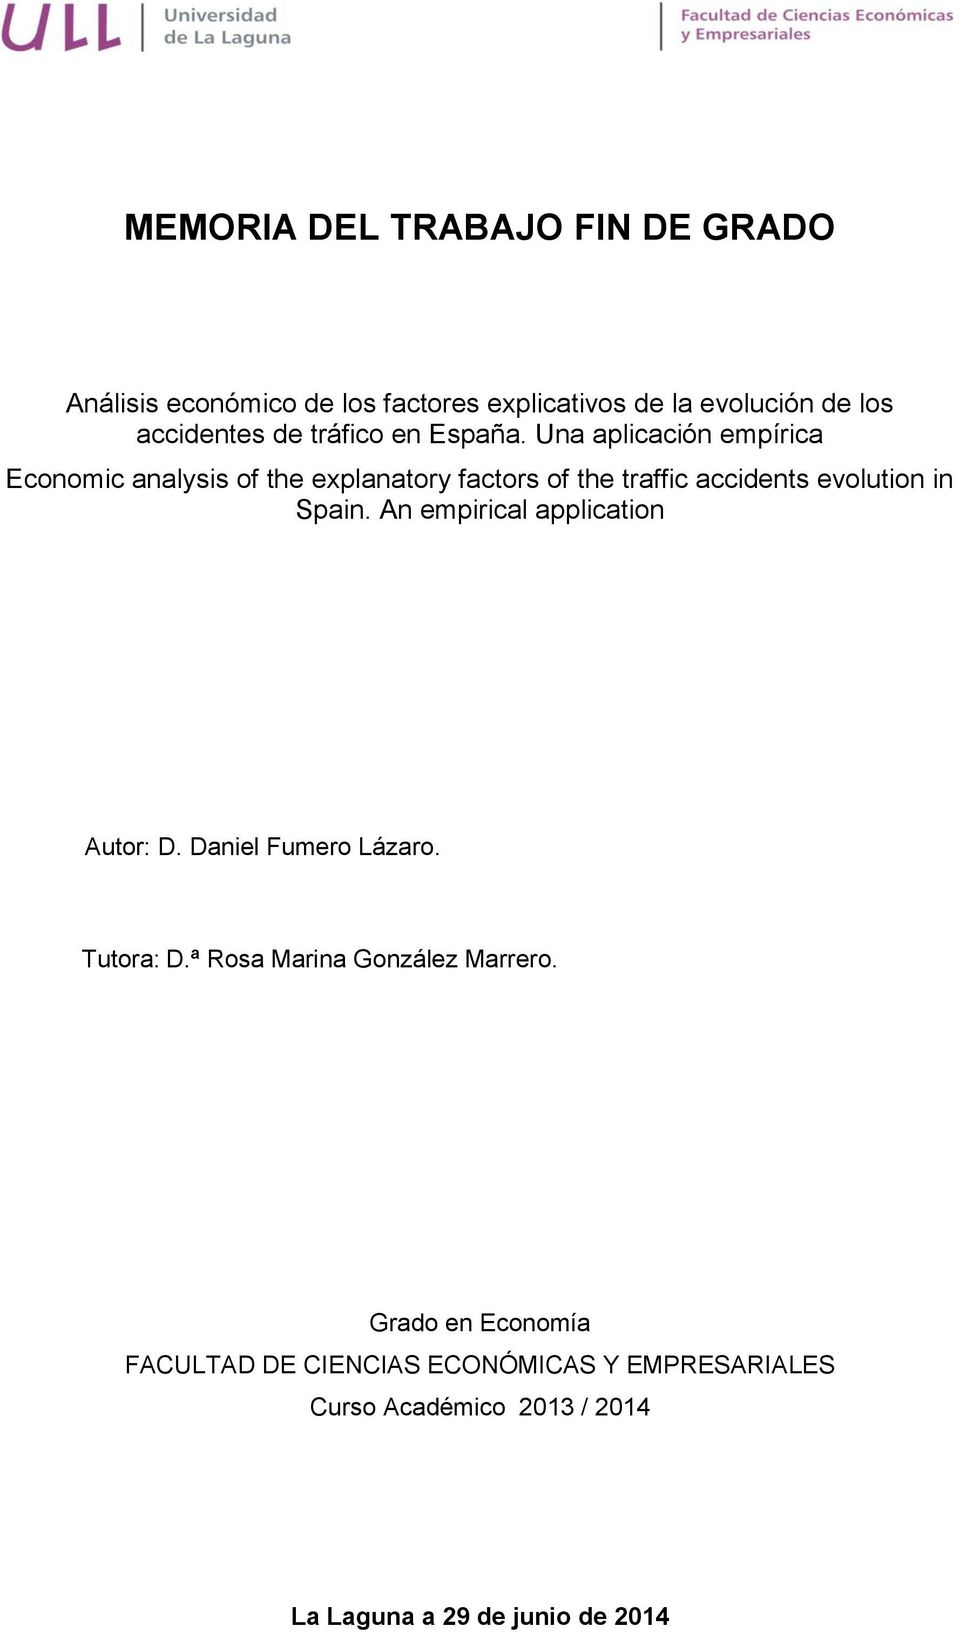 Una aplicación empírica Economic analysis of the explanatory factors of the traffic accidents evolution in Spain.